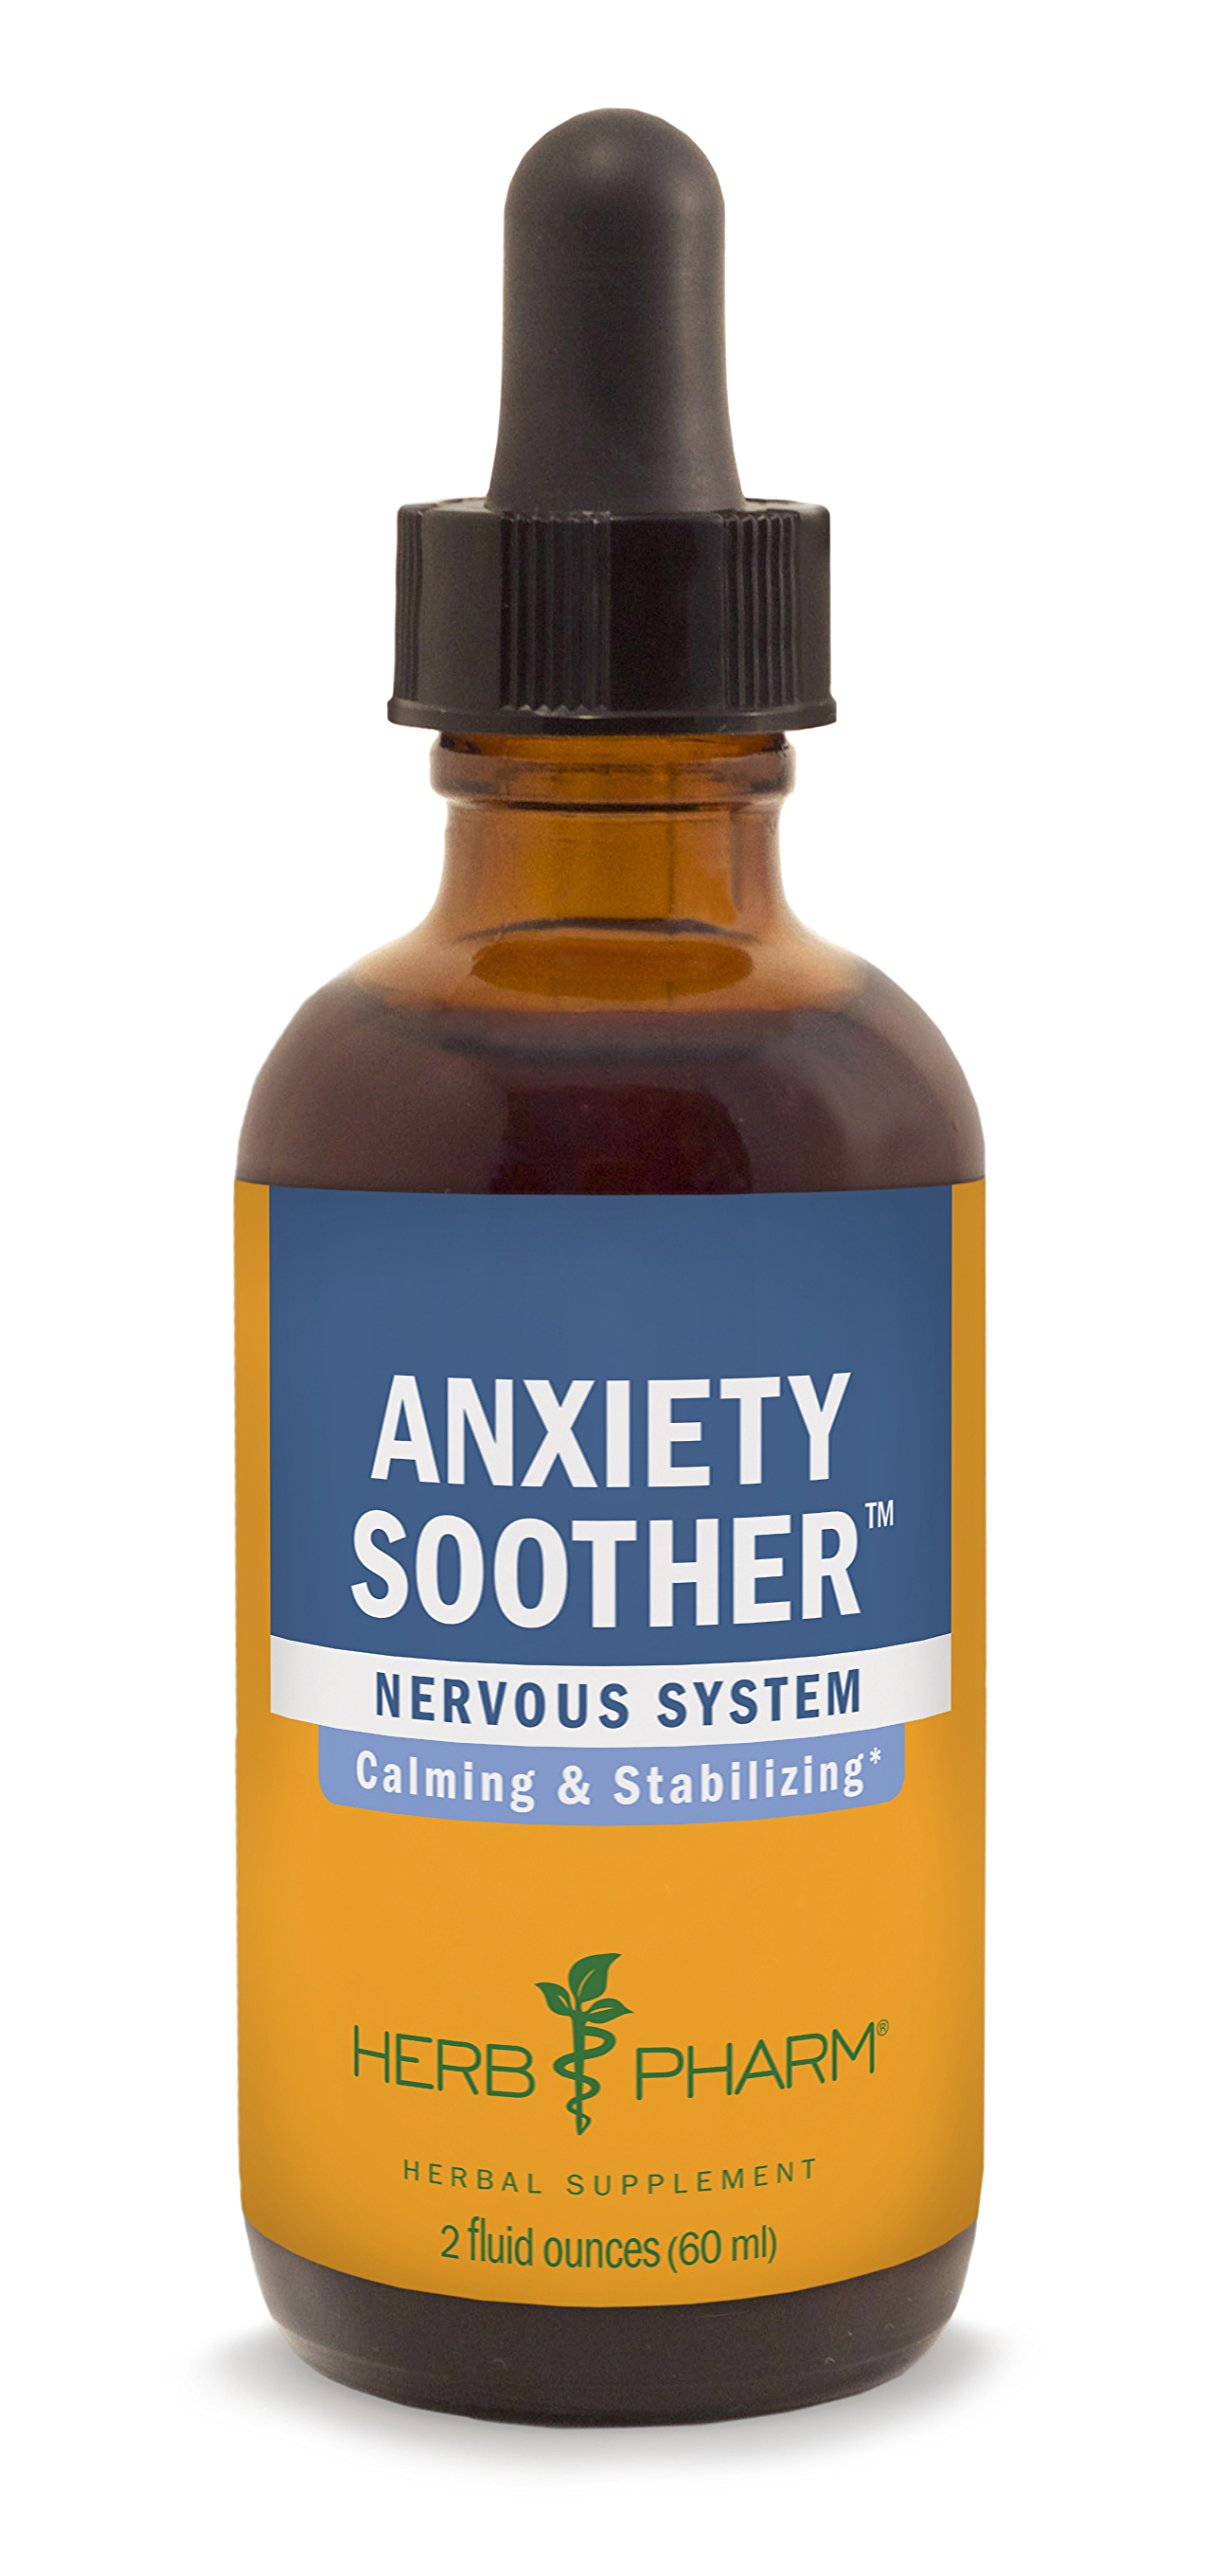 Herb Pharm Anxiety Soother Herbal Formula with Kava For Nervous System Support - 2 Ounce